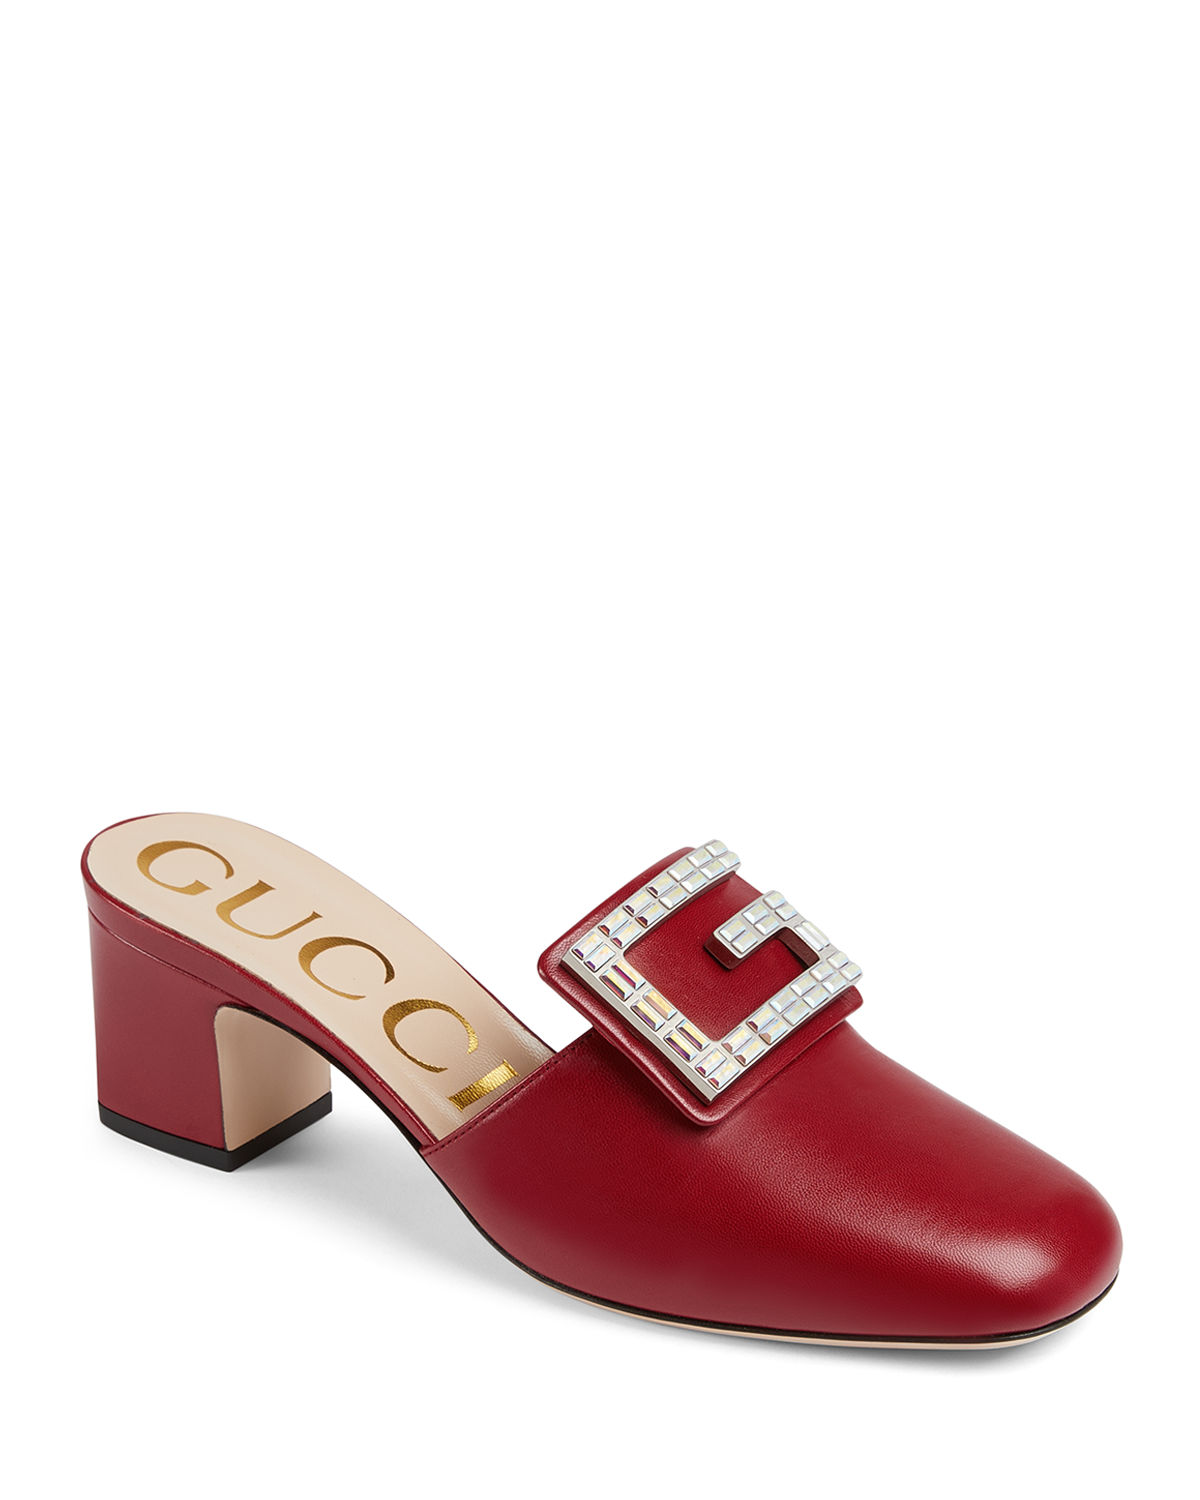 820d06c7edd Gucci Madelyn 55mm Leather Mules with Square G